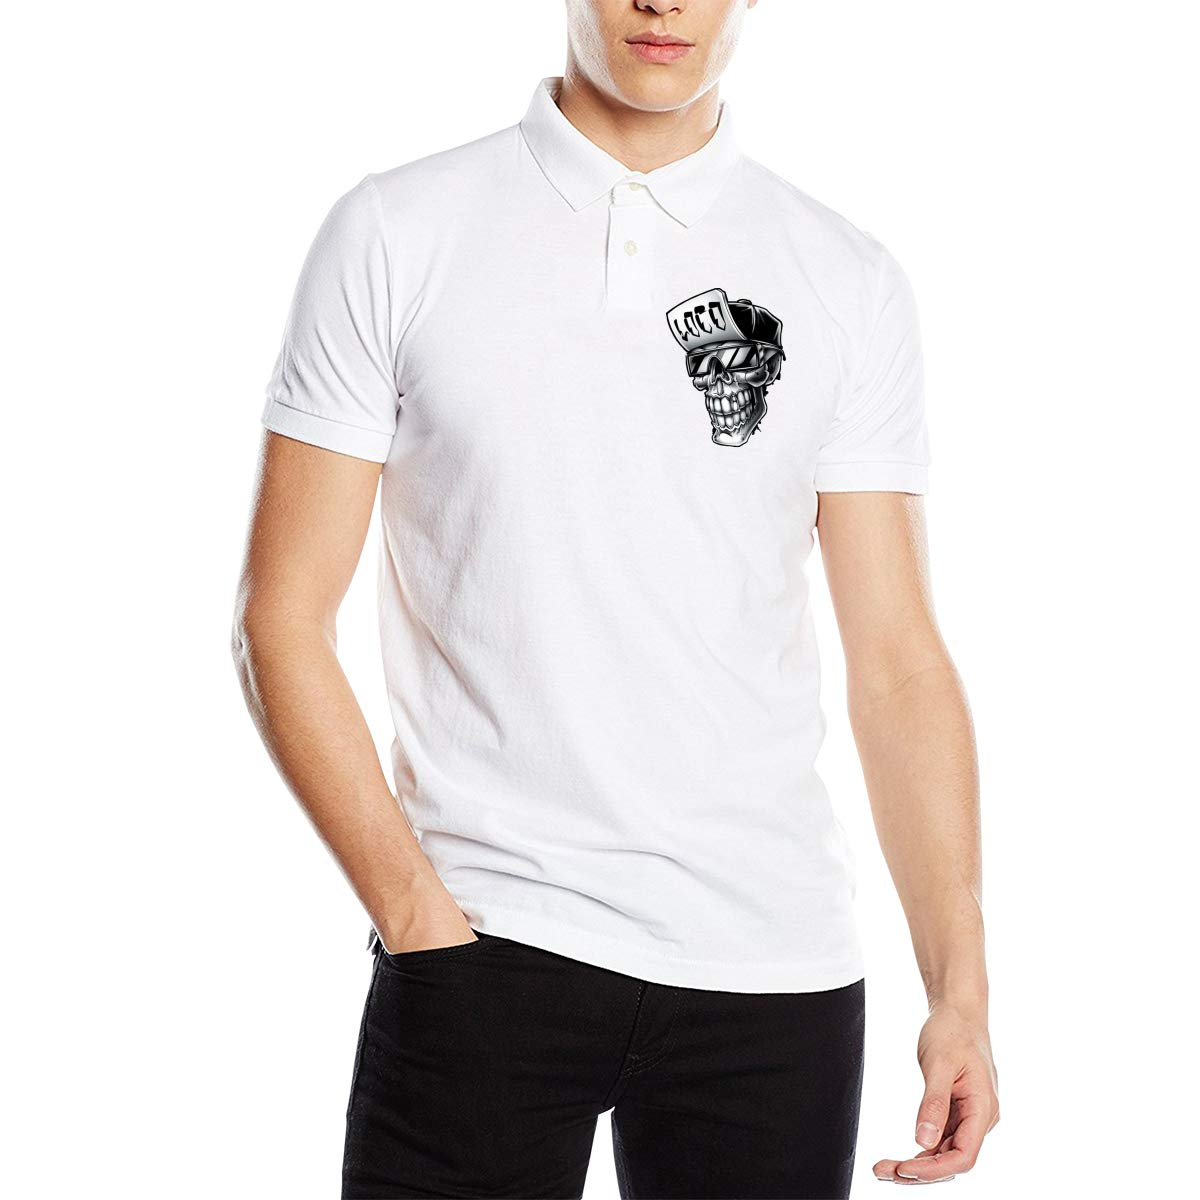 Allison Polly Skull Mens Classic Short Sleeve Solid Color Soft Cotton Polo Sports Shirt White